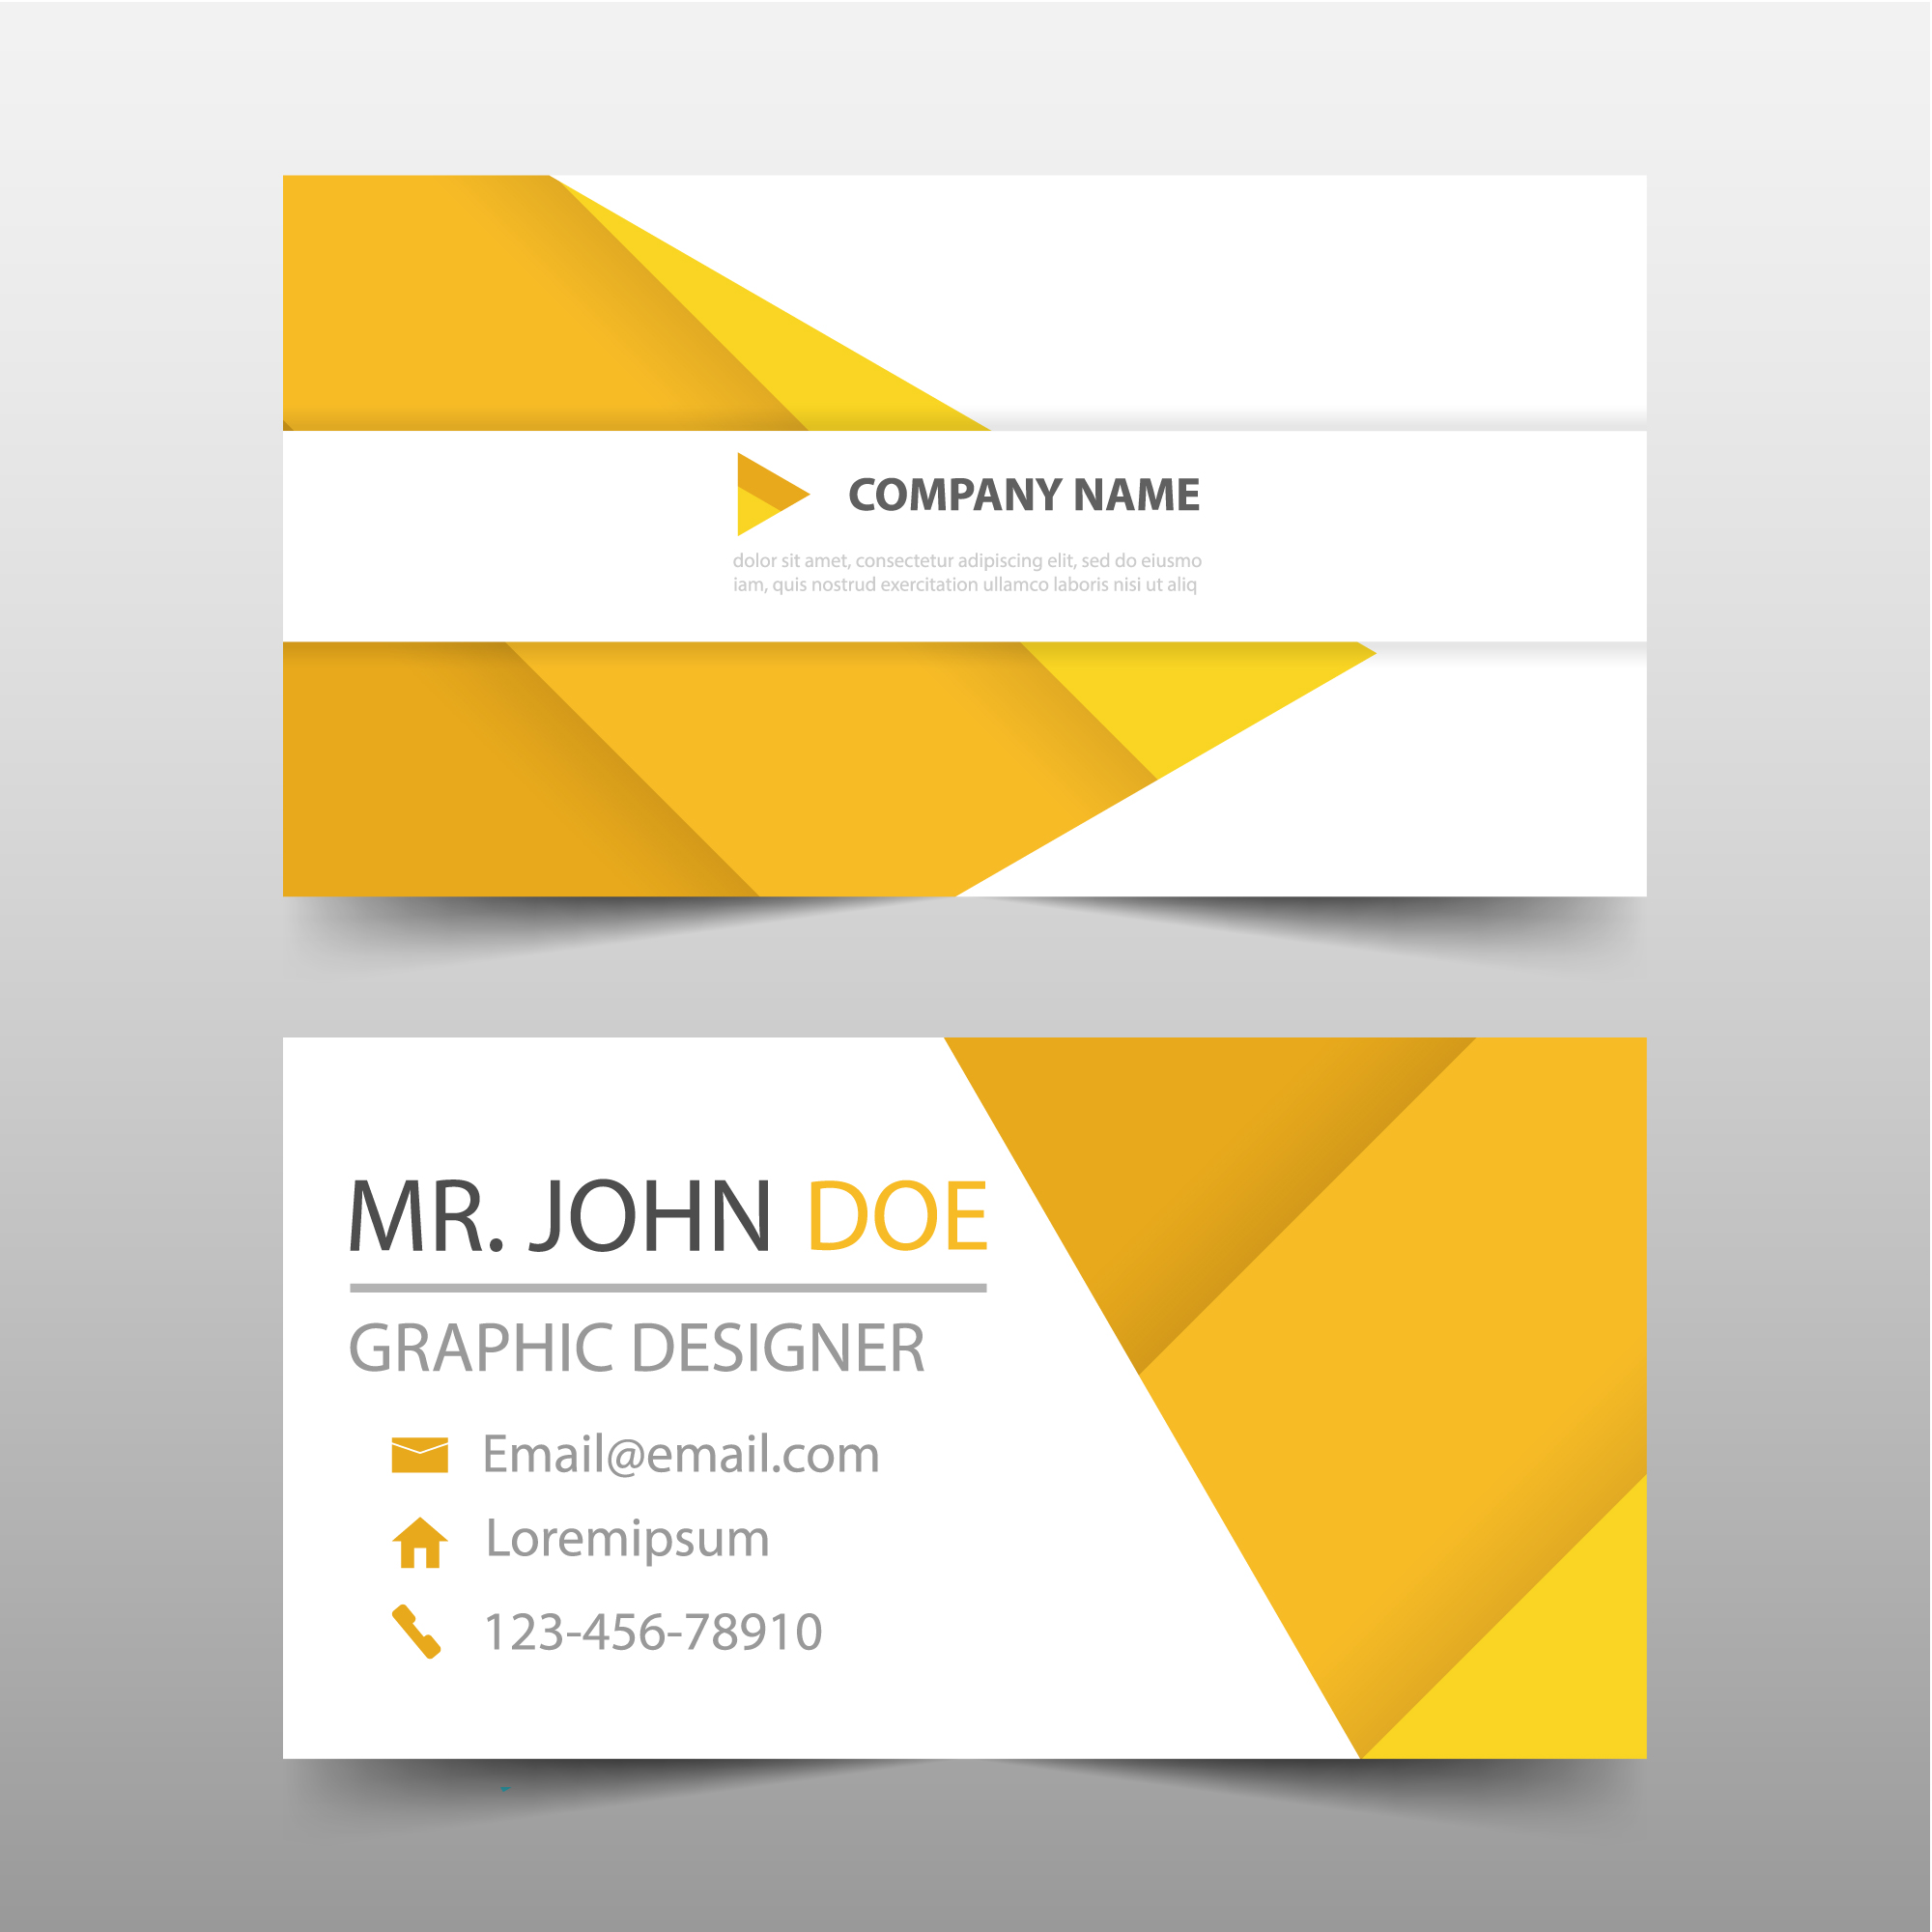 Yellow geometric style business card